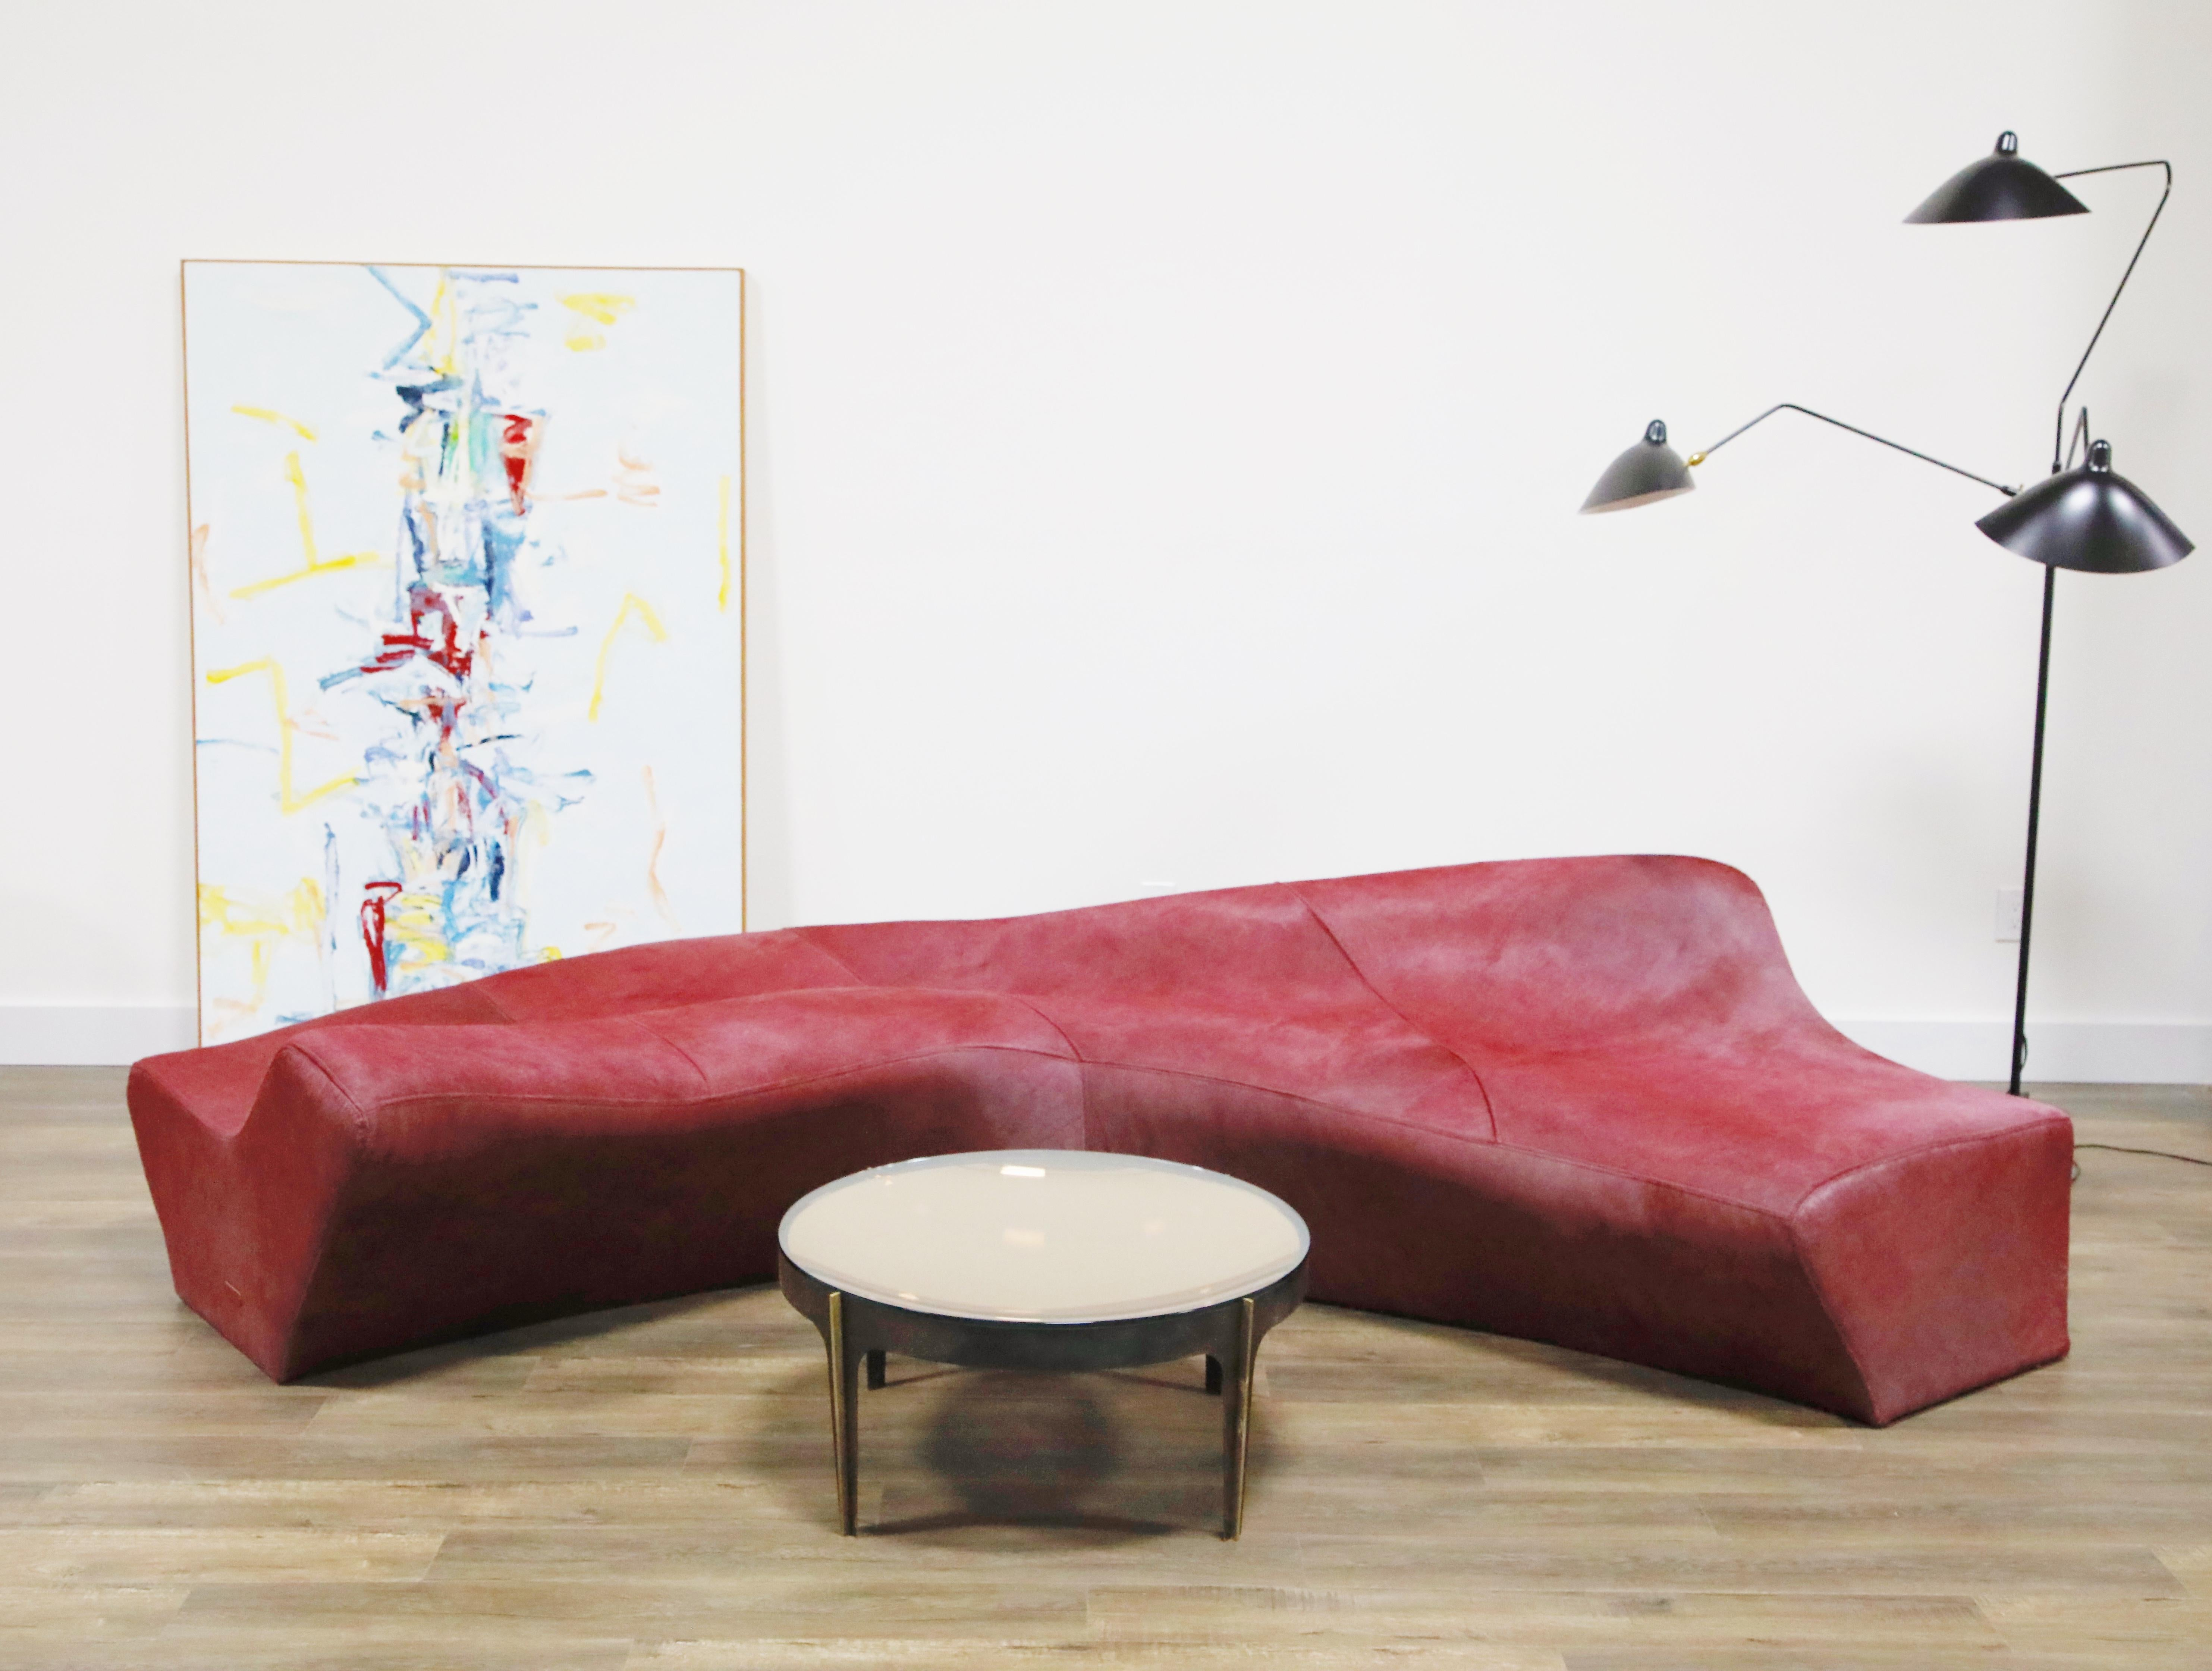 The Moraine couch from Zaha Hadid's Z-Scape series, offered by Automaton